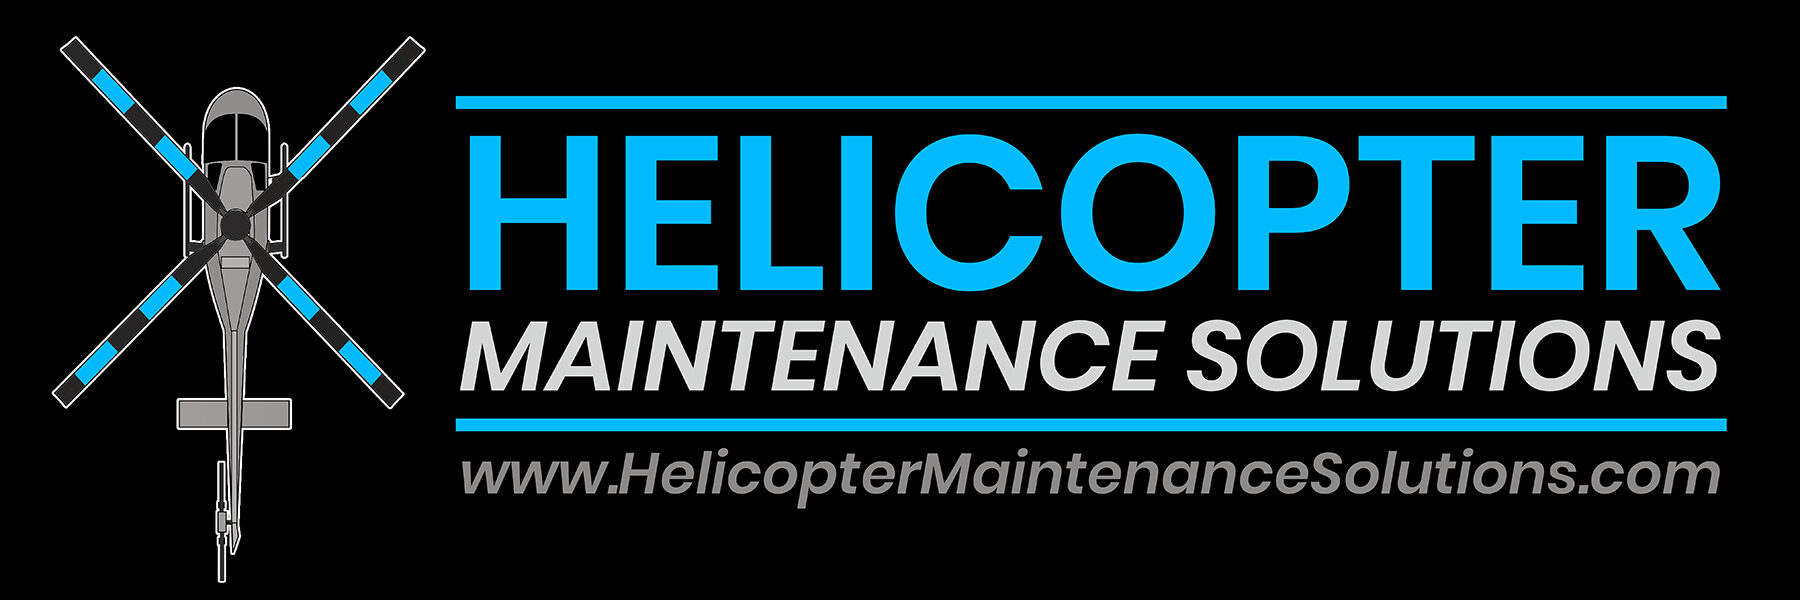 Helicopter Maintenance Solutions